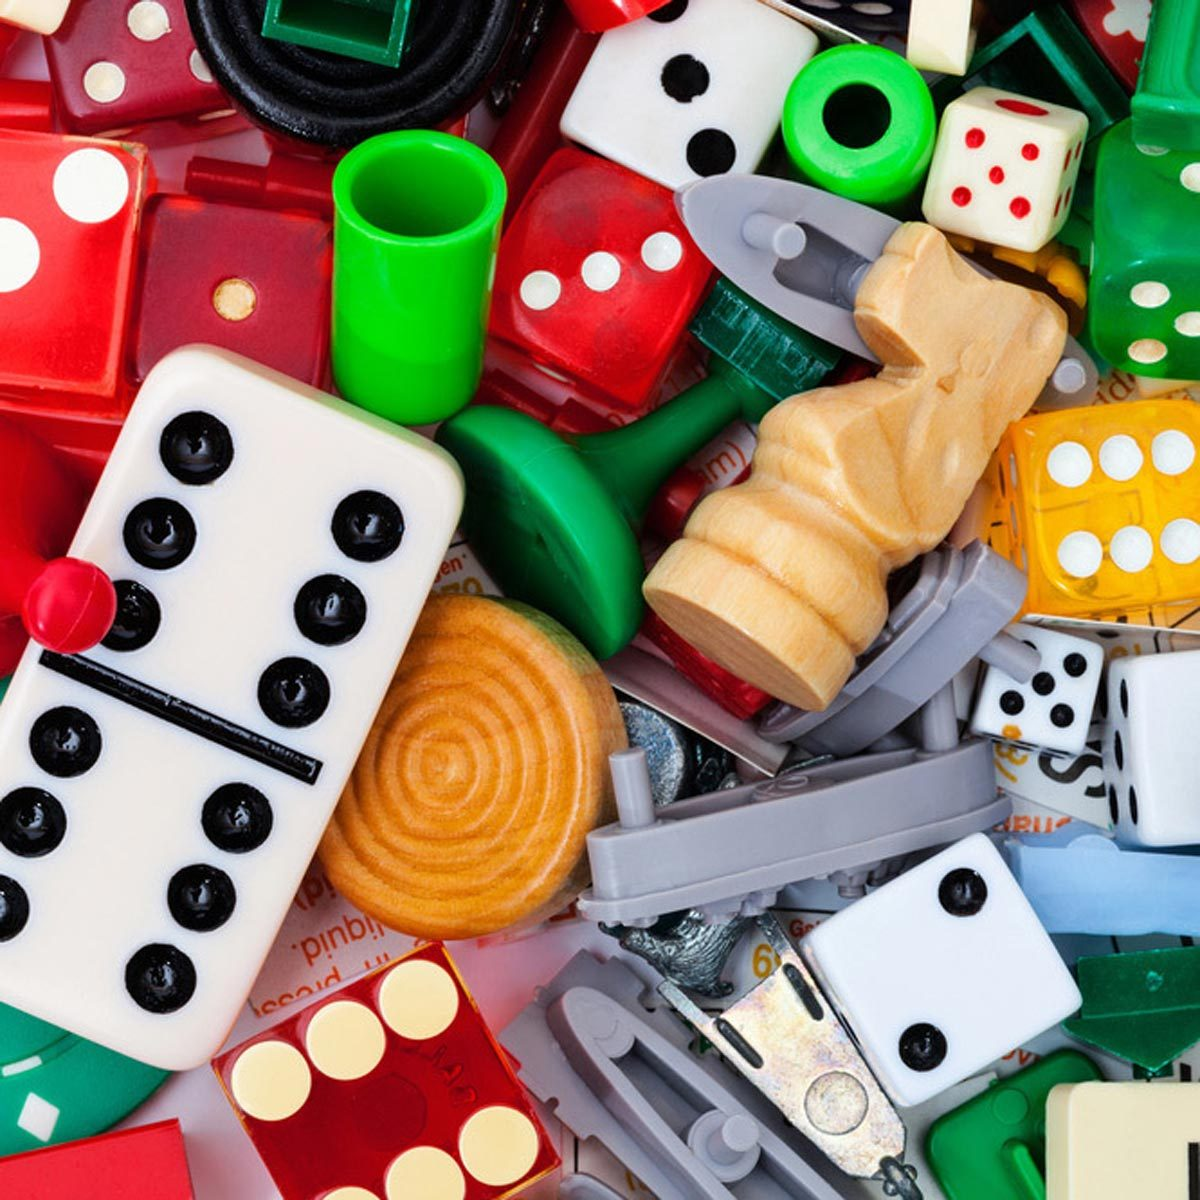 game pieces dice dominos chess checkers battle ship sorry